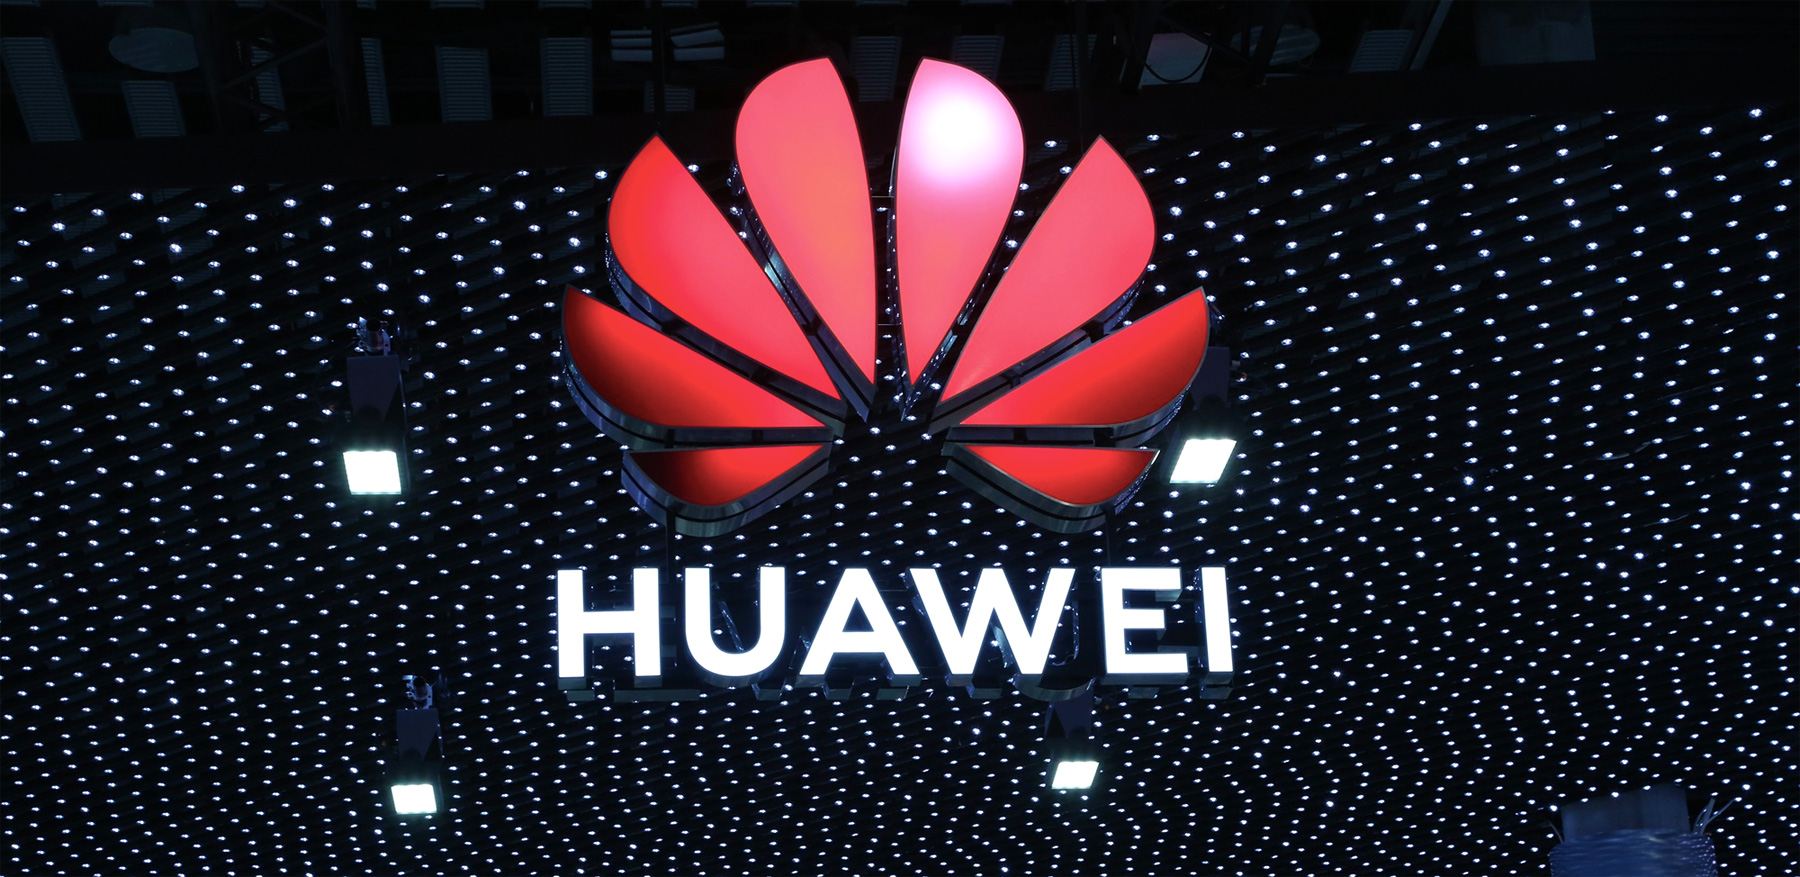 Huawei Says They Are Willing to Sign No-Spy Agreements With Governments